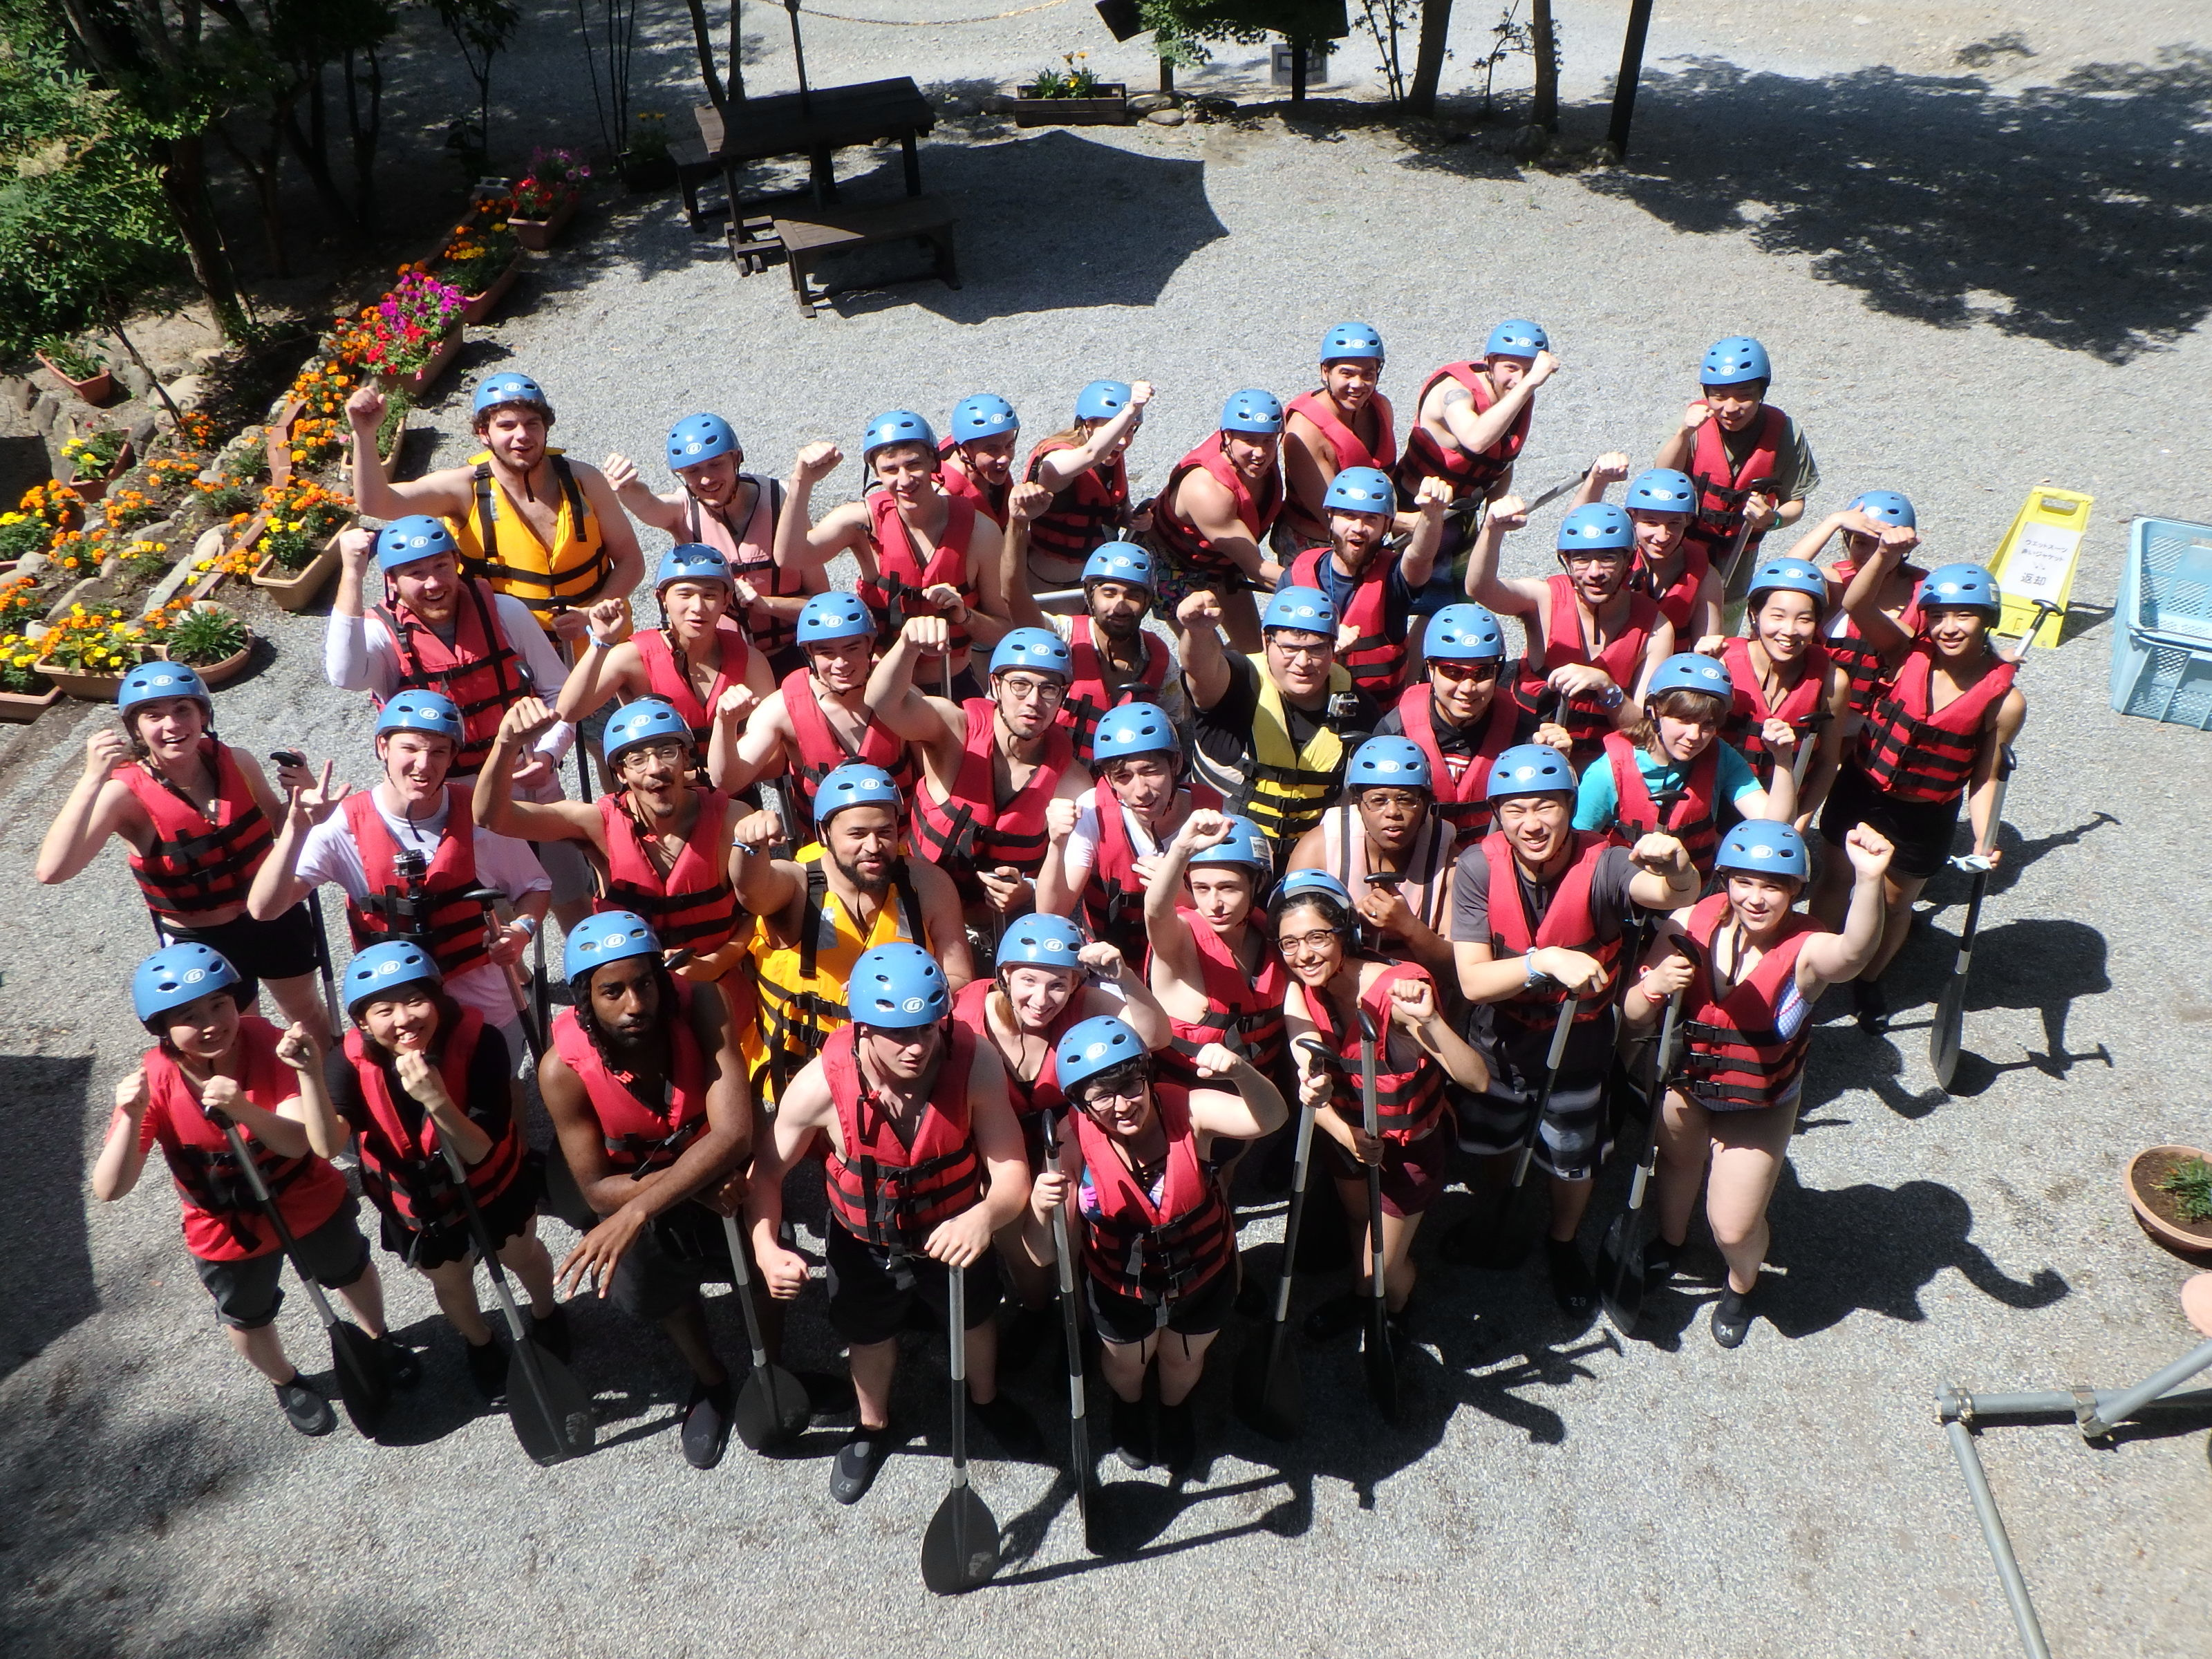 Students from Temple University Japan pose together while on a kayaking trip.